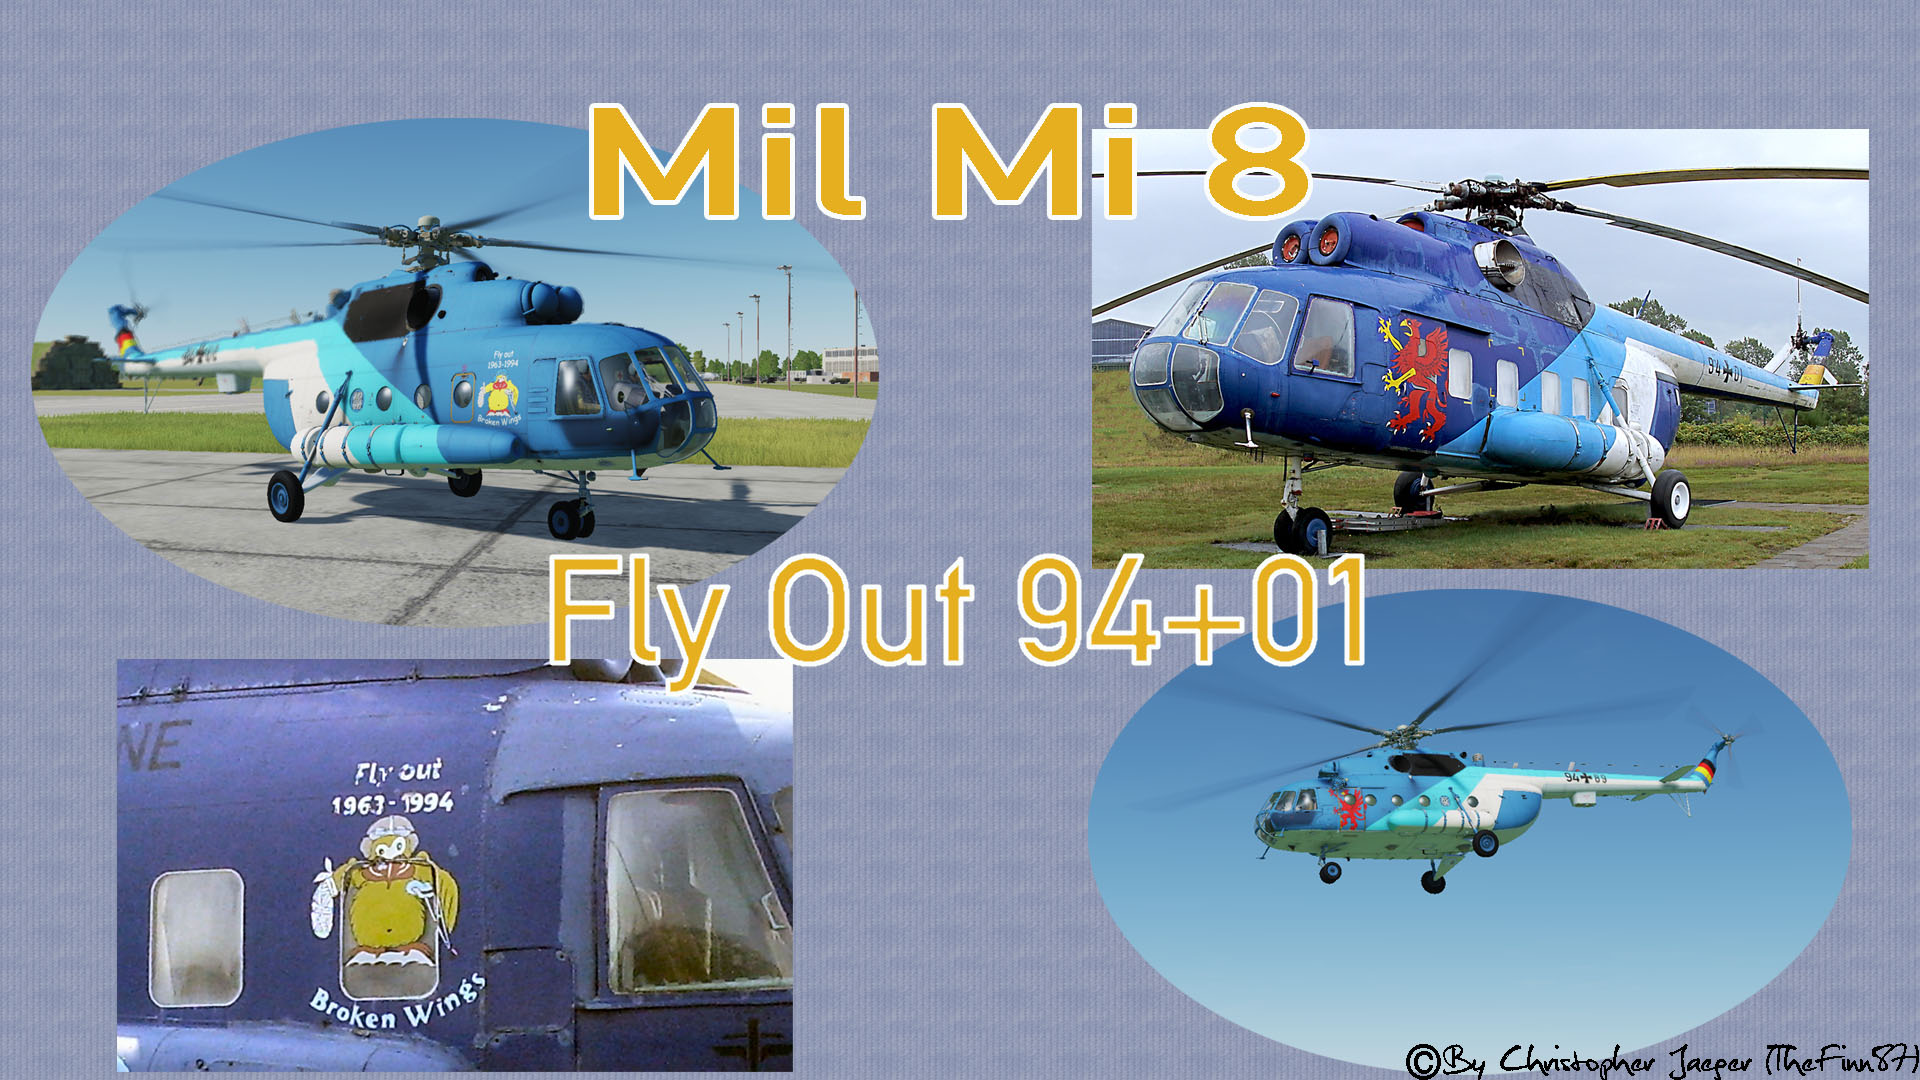 Mil Mi 8 Fly Out 94+01 (Broken Wings)